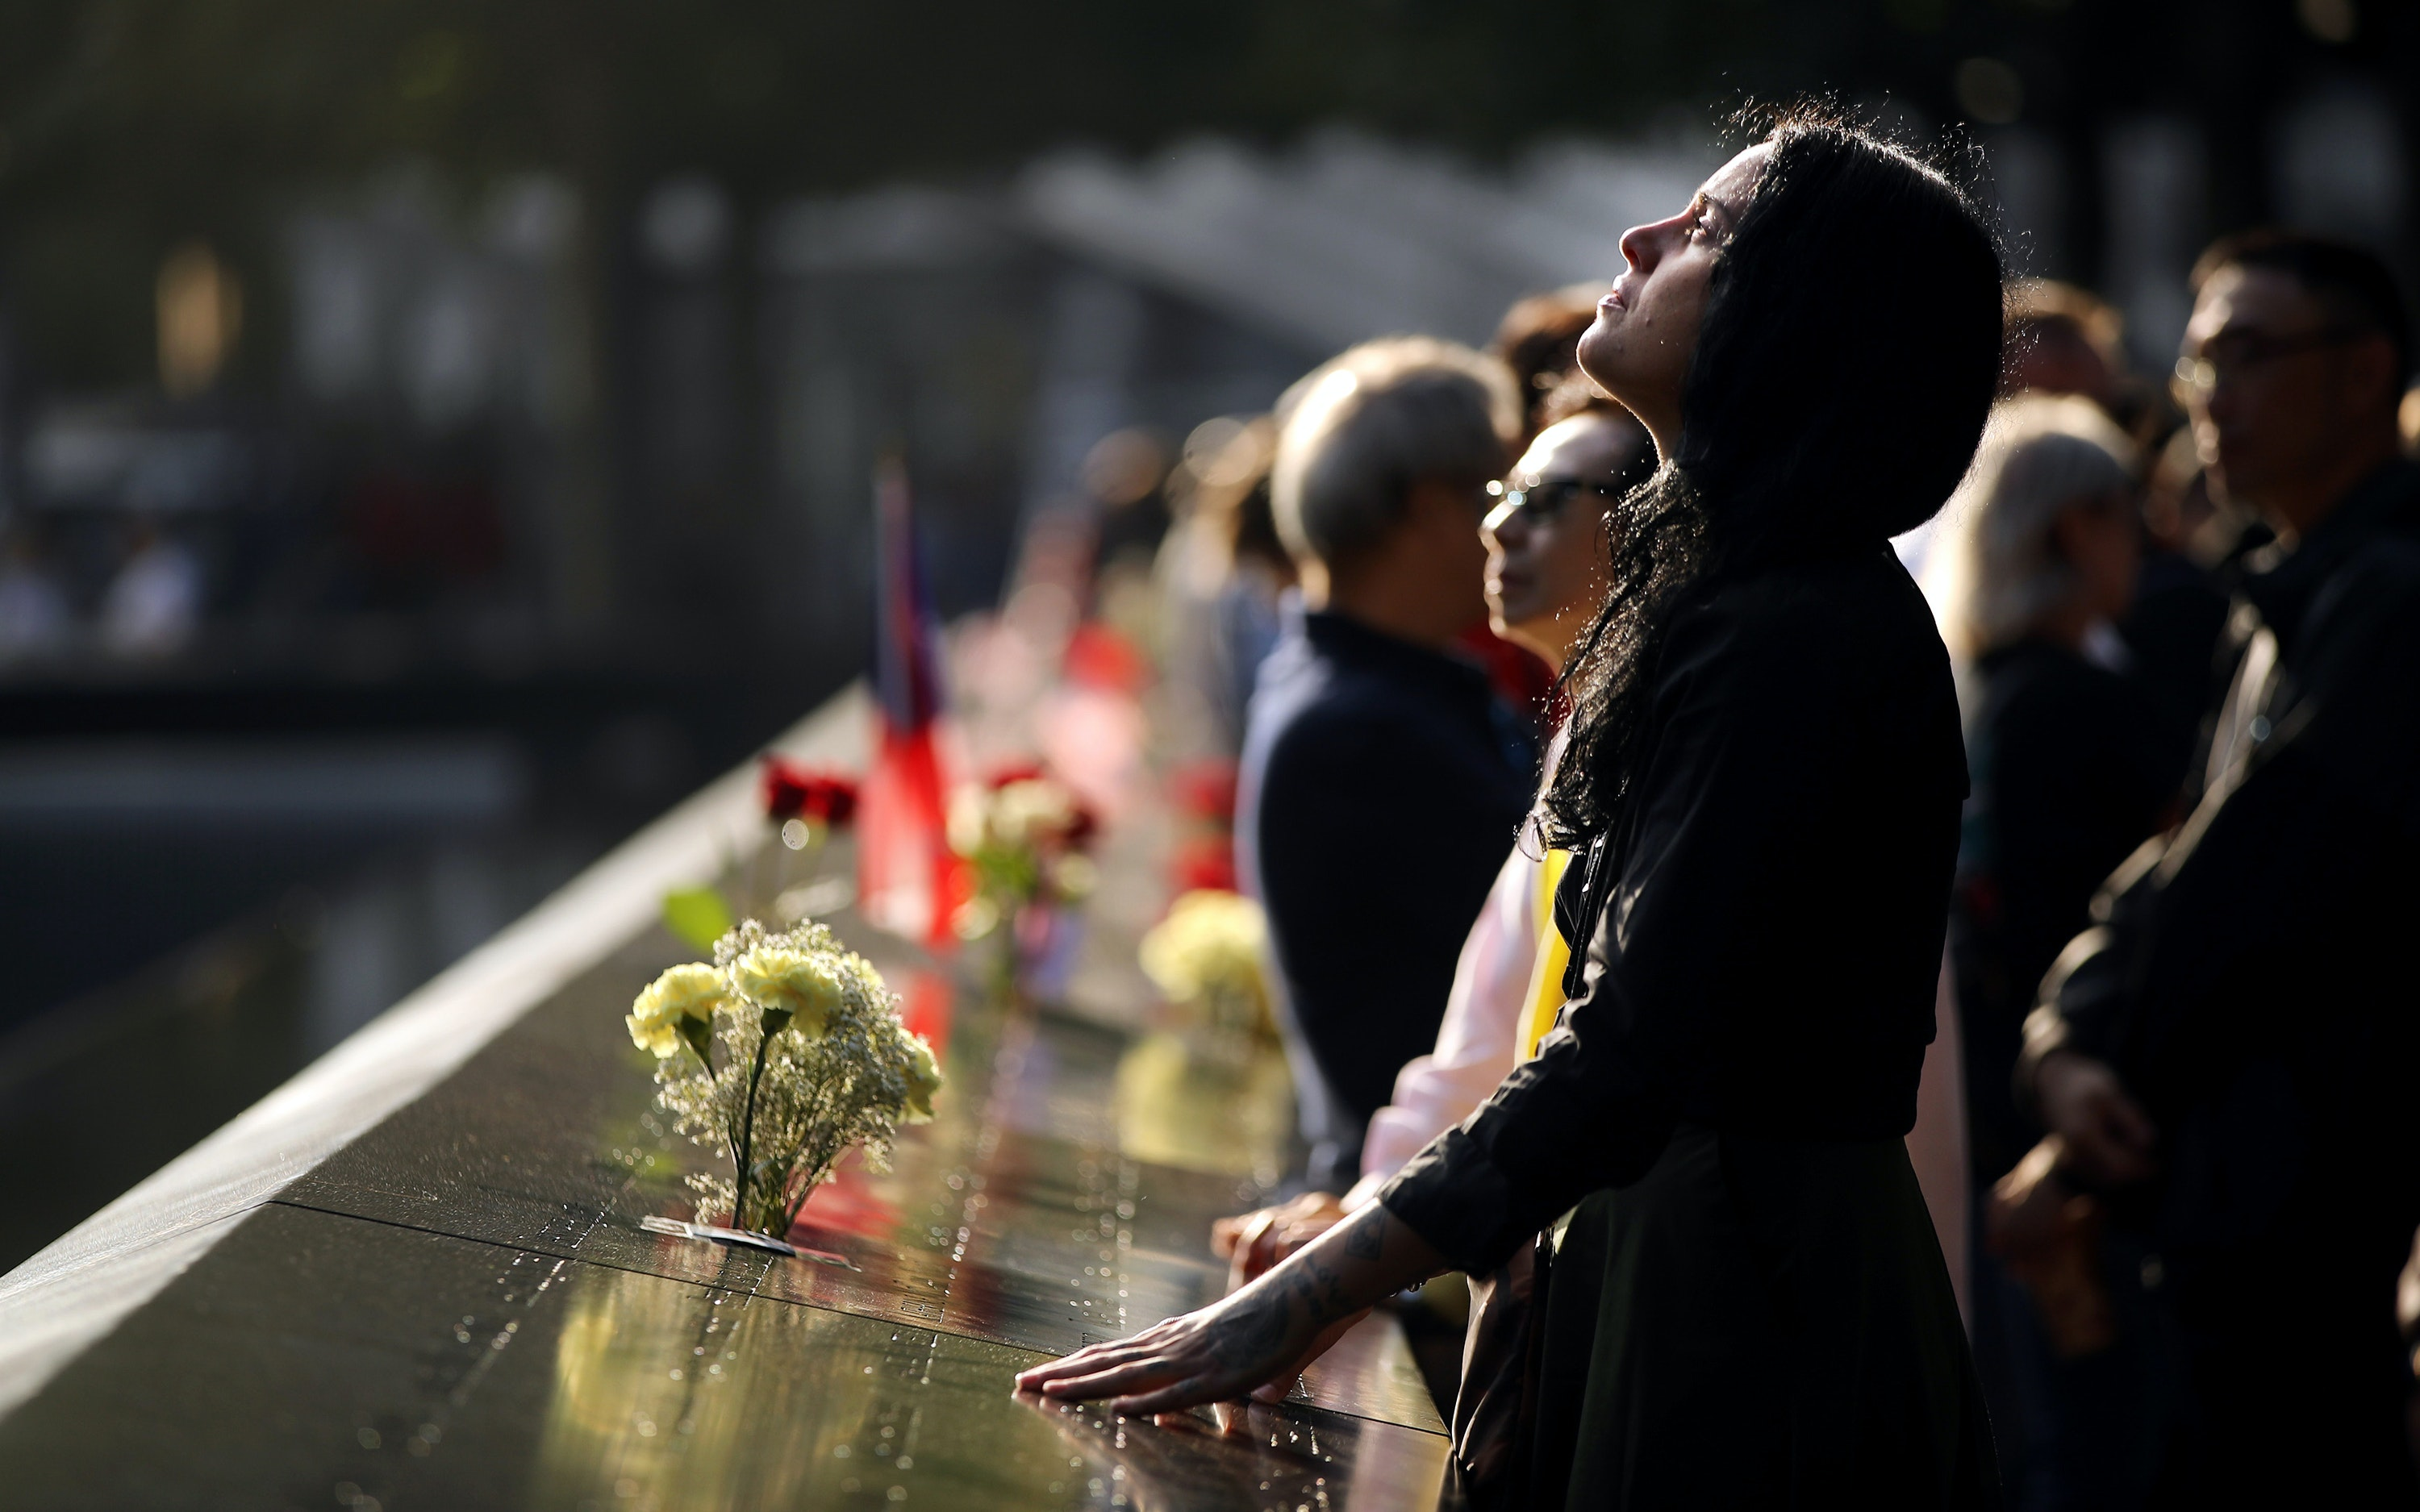 A woman standing at the September 11 memorial